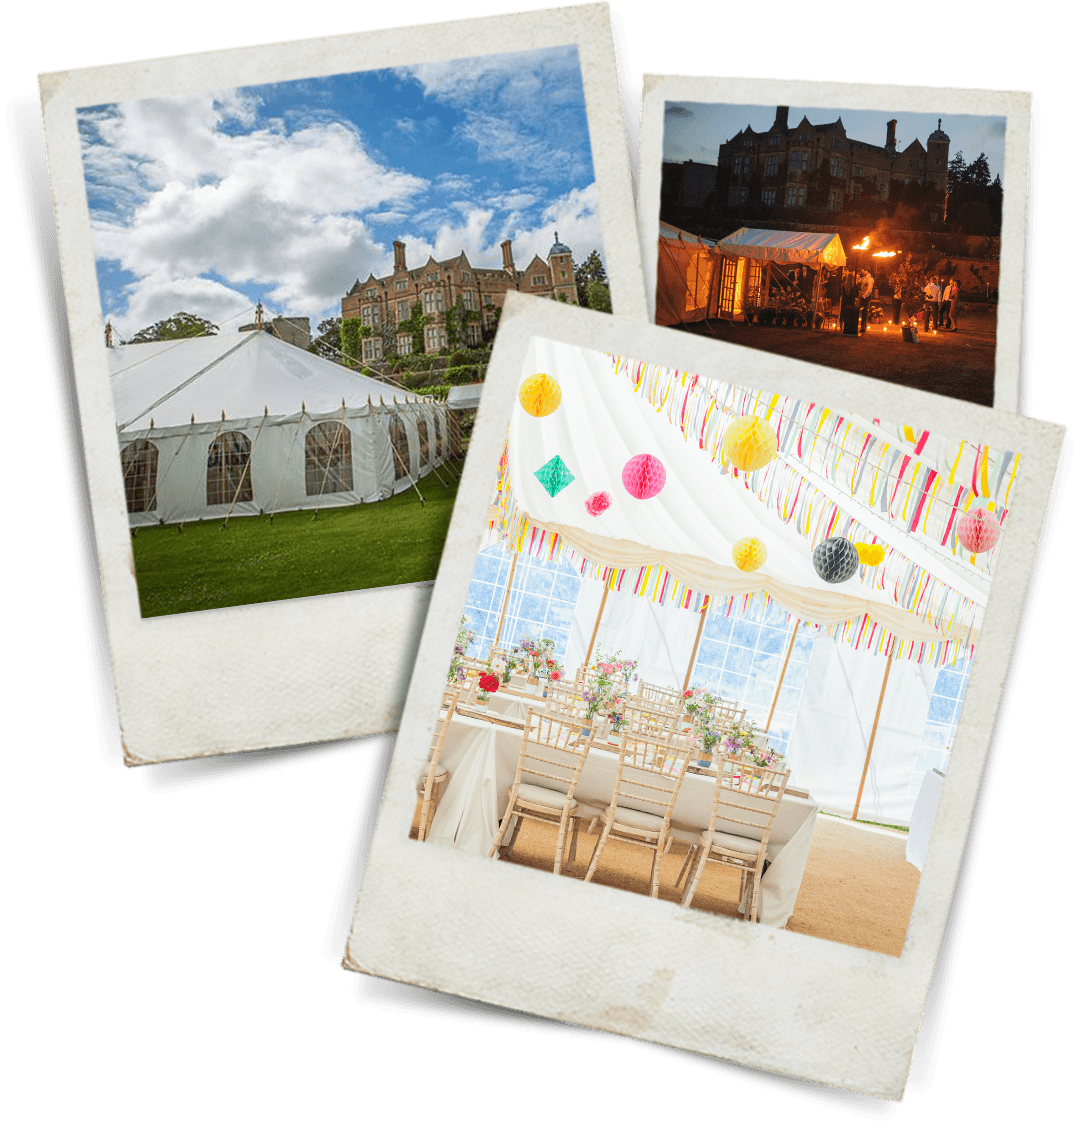 About Maypole Marquees